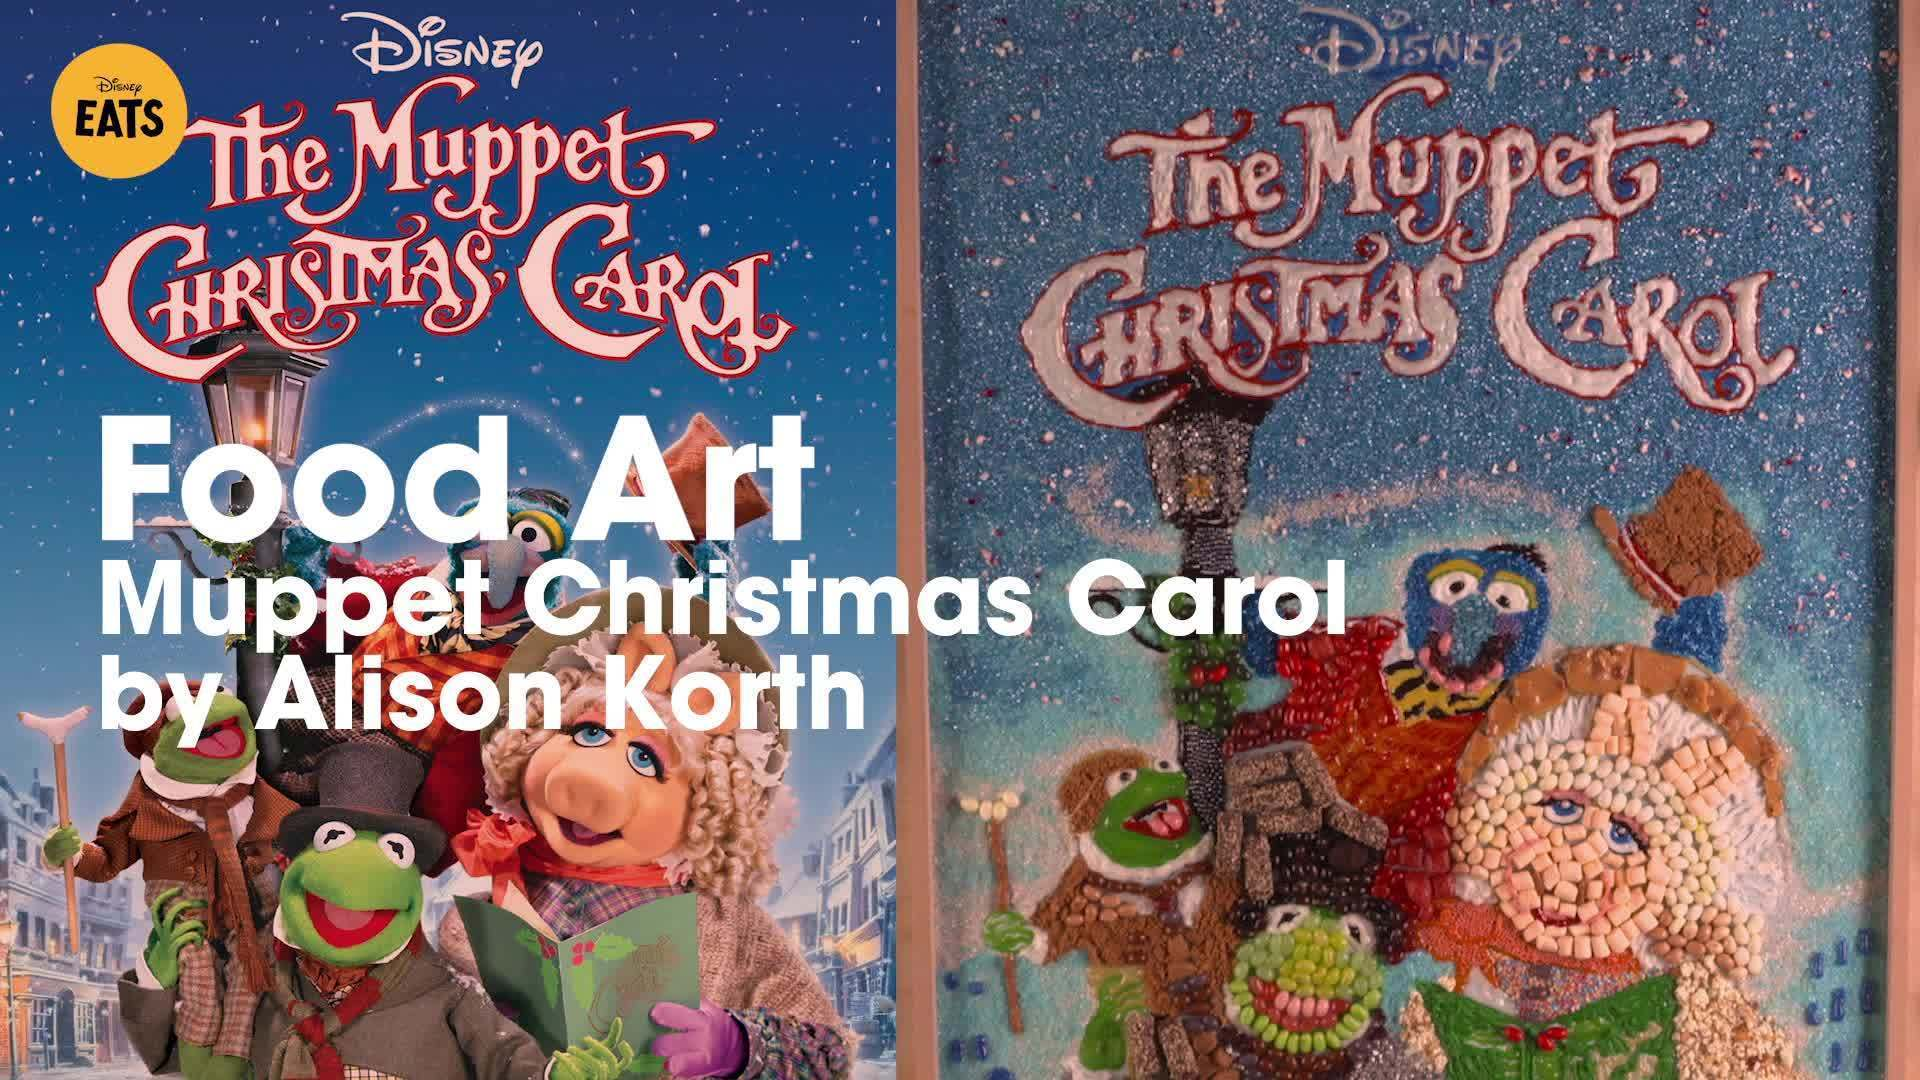 Muppet Christmas Carol Food Art | Disney Eats